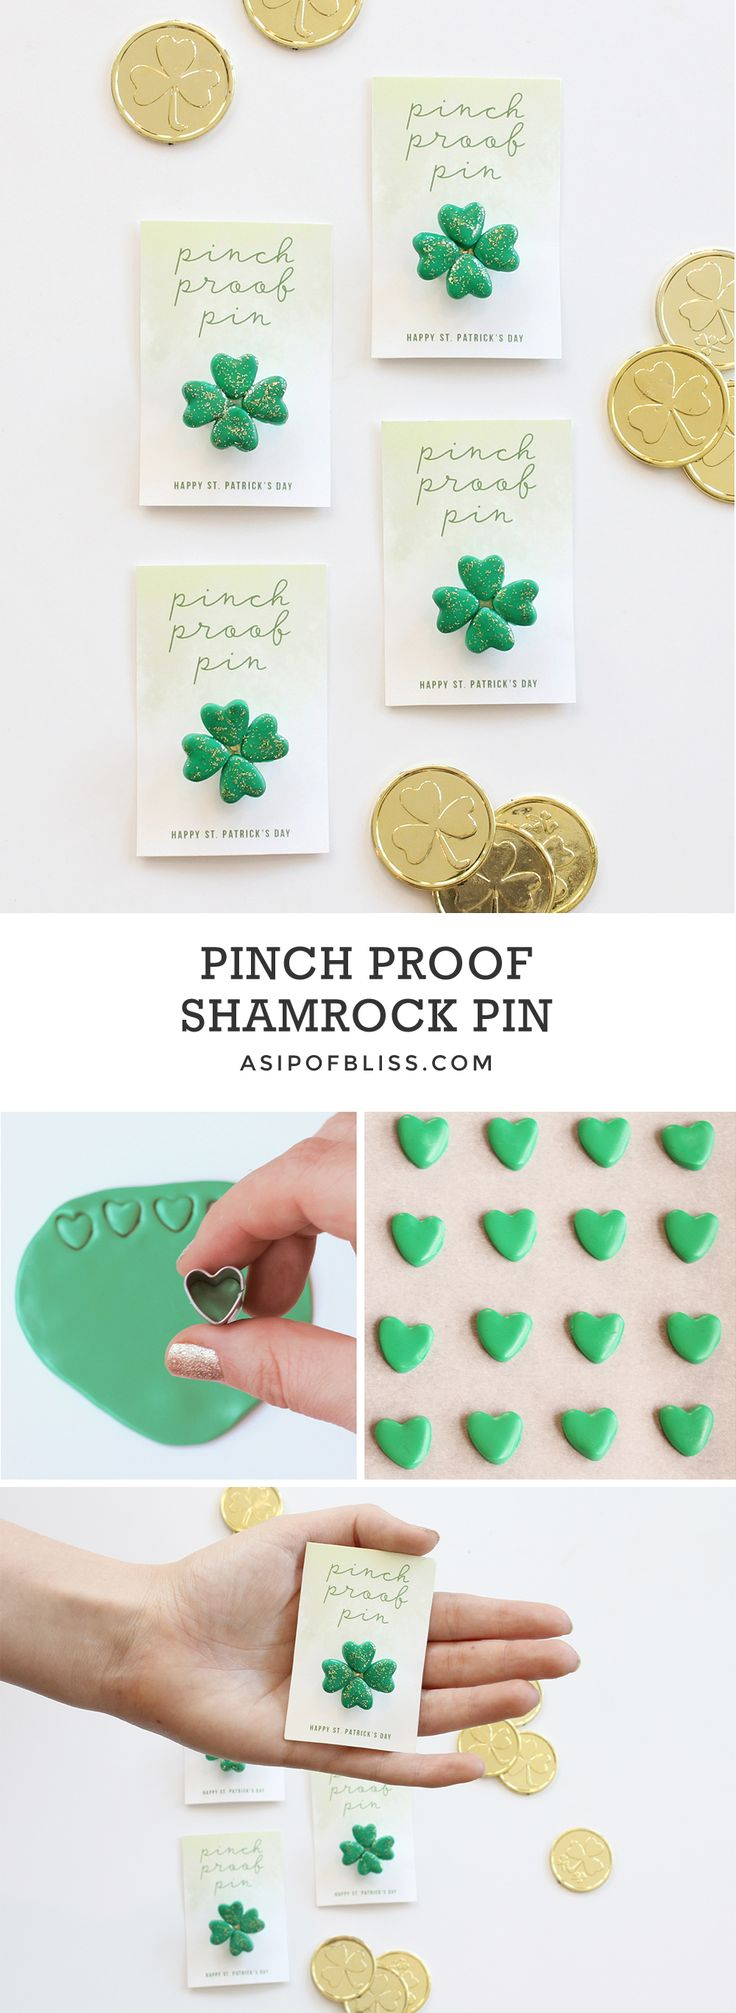 How to make april fools day chocolate bunny filled with veggies - Pinch Proof Shamrock Pin Free Printable